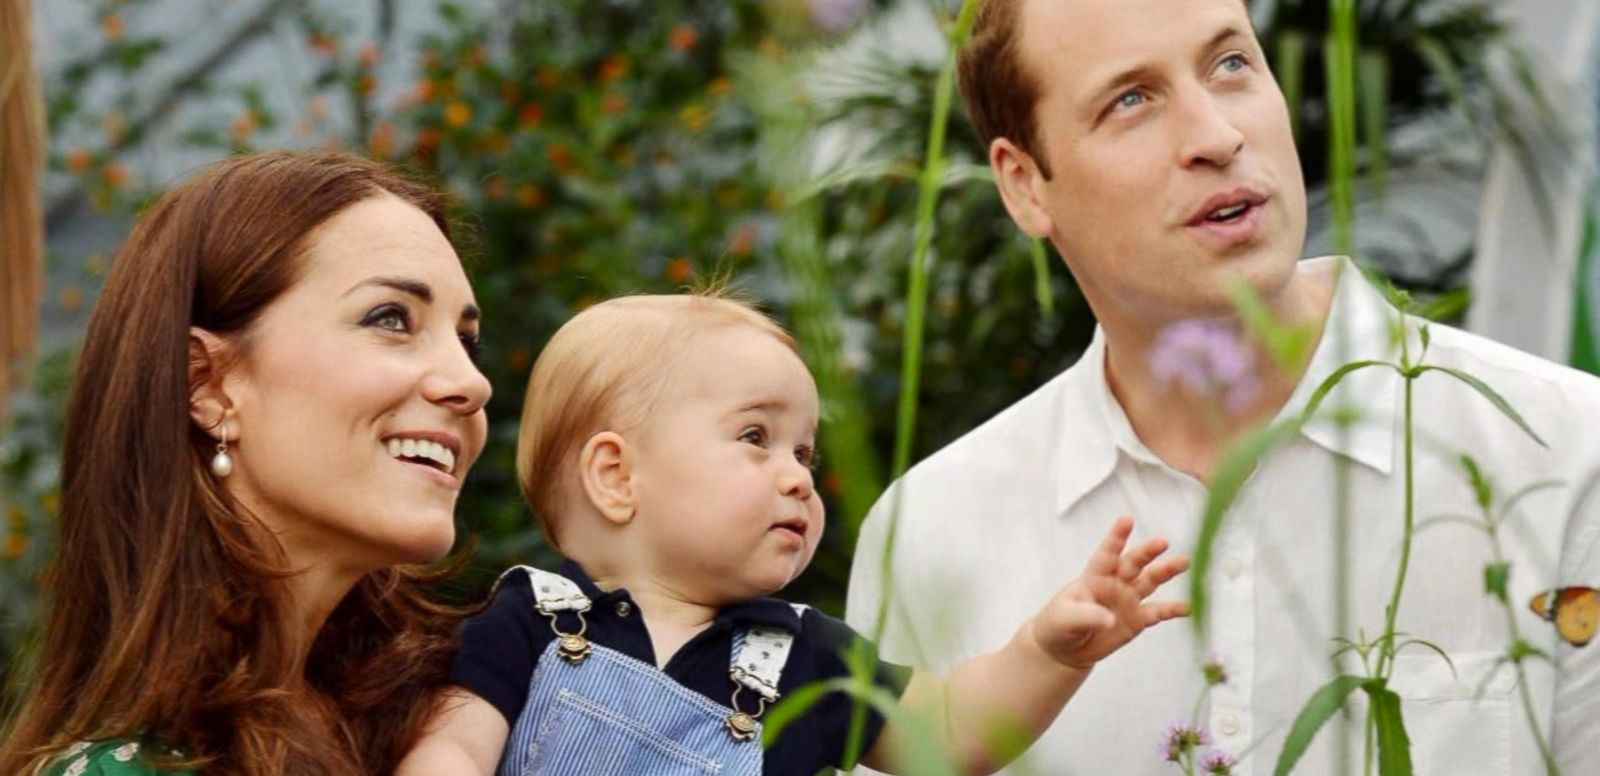 VIDEO: How the Royal Family Spends Their Days